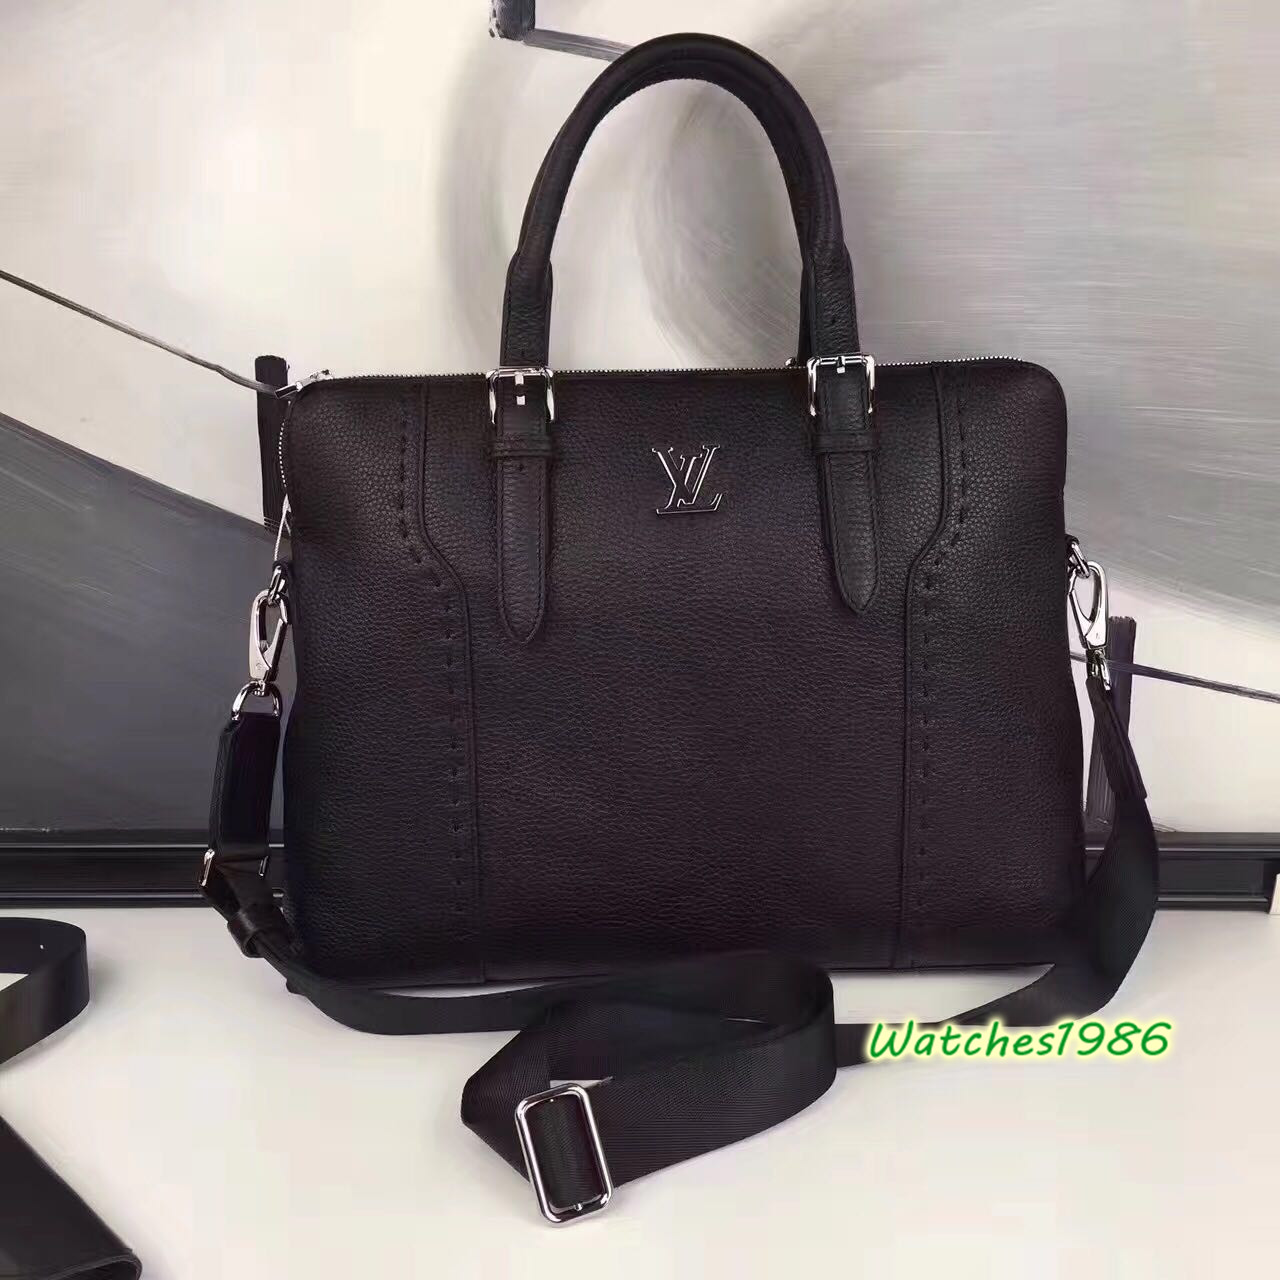 Replica handbags online Louis Vuitton Business Bags